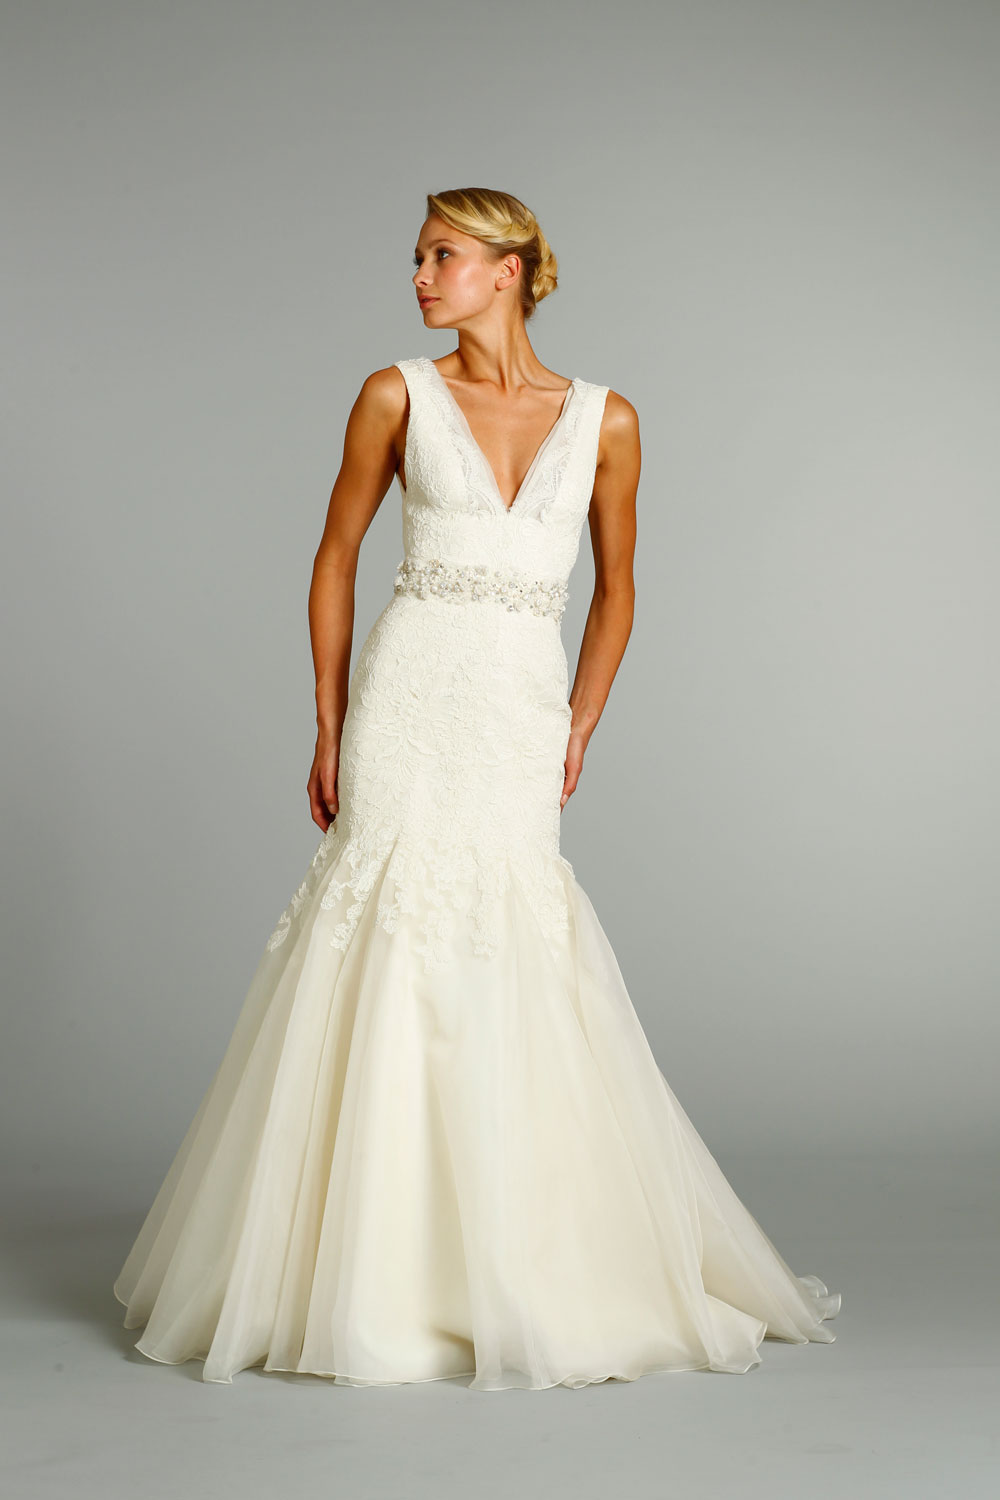 Fall 2012 wedding dress jim hjelm bridal gowns 8251 for Jim hjelm wedding dresses